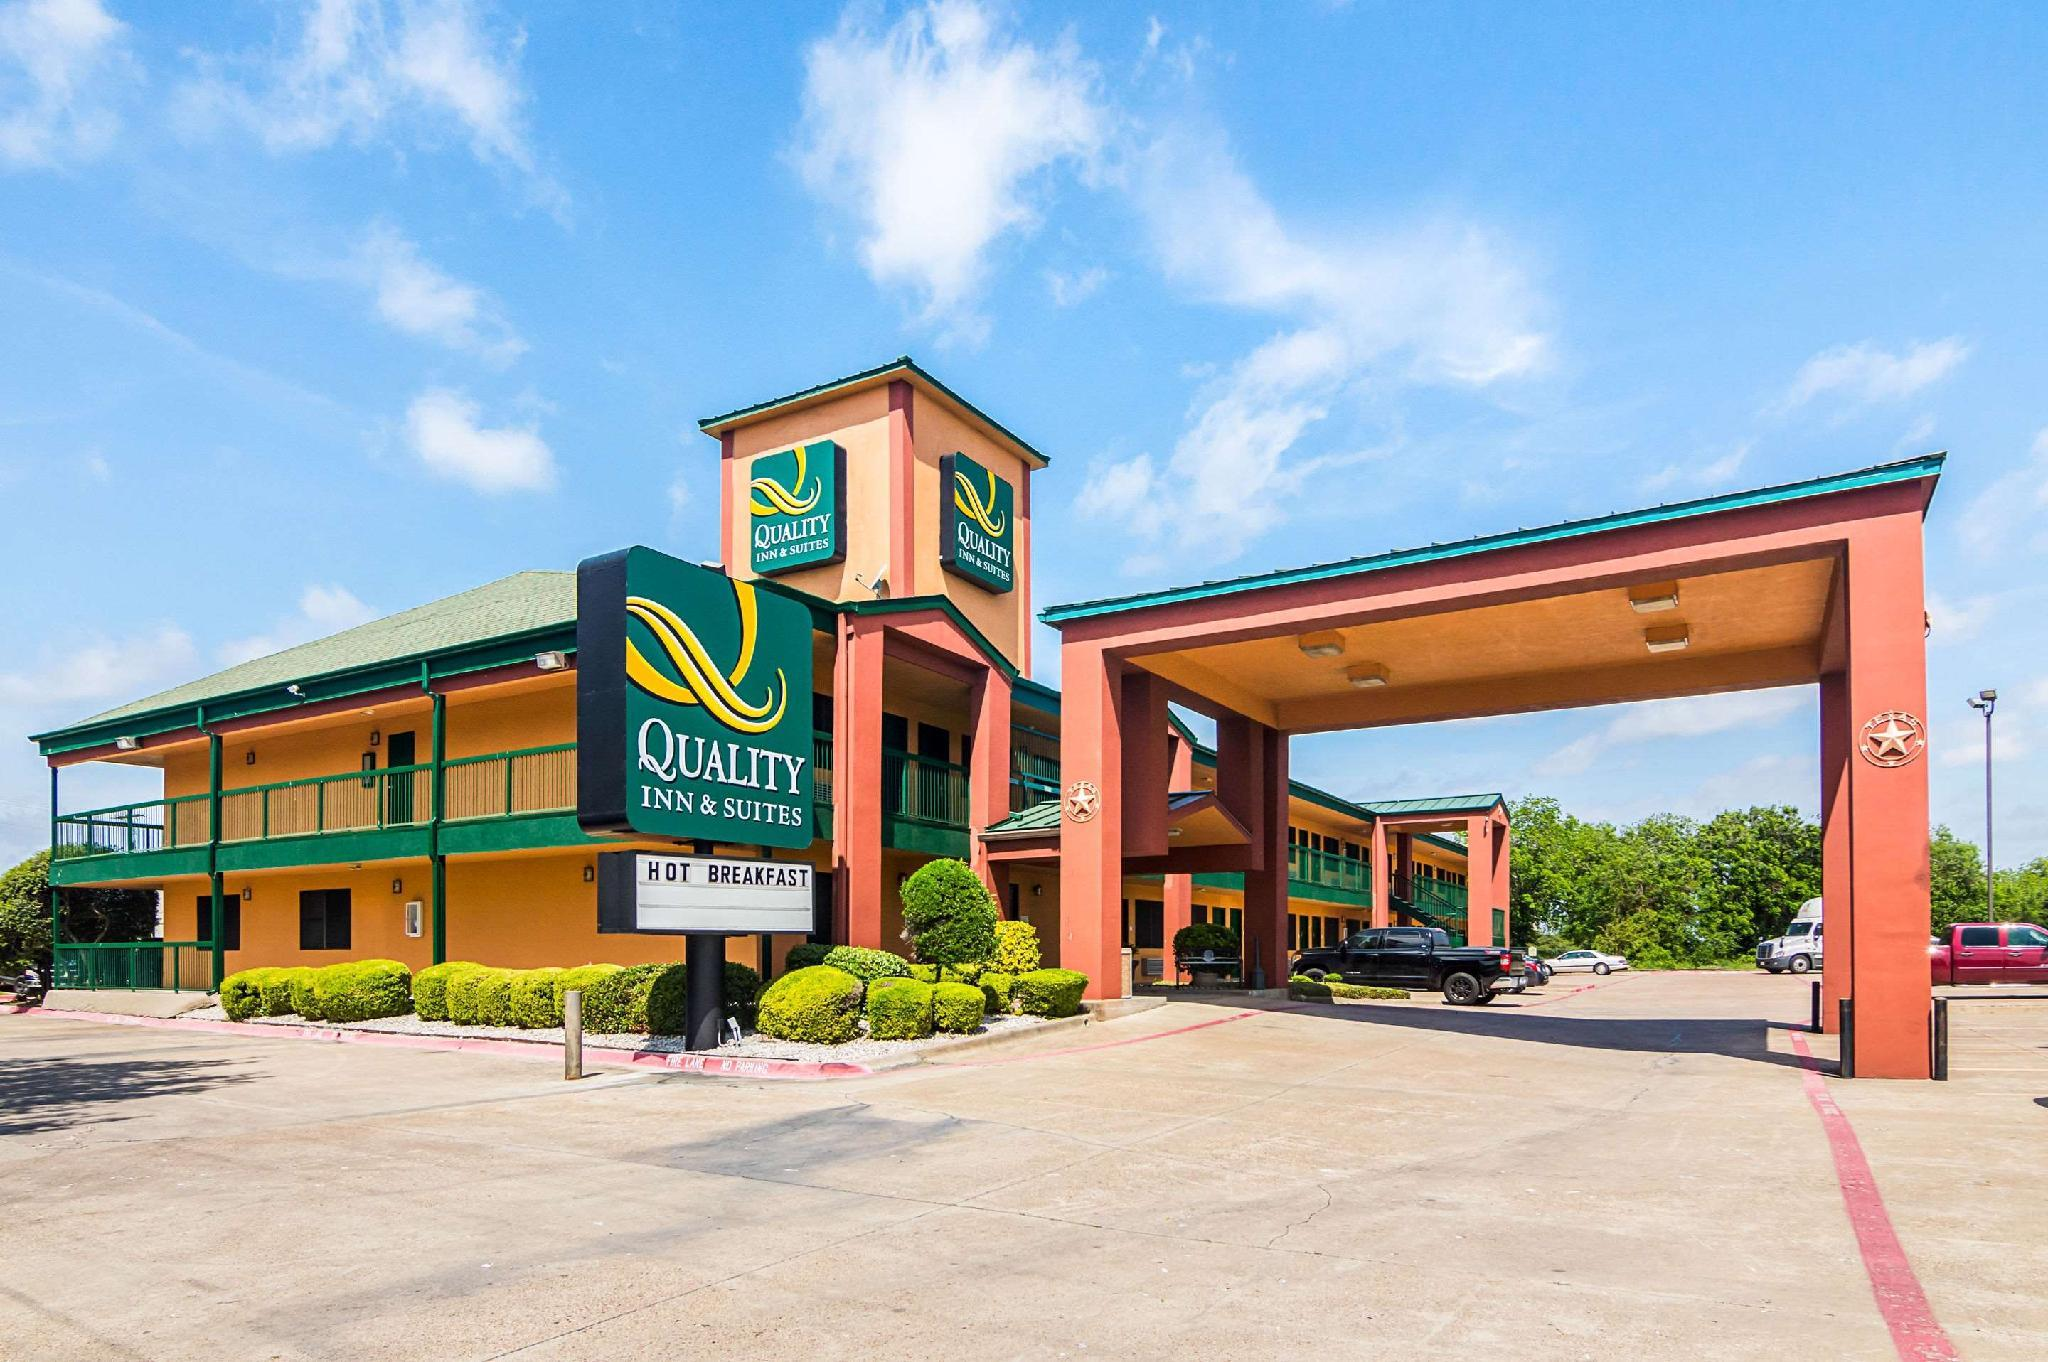 Quality Inn And Suites Garland   East Dallas